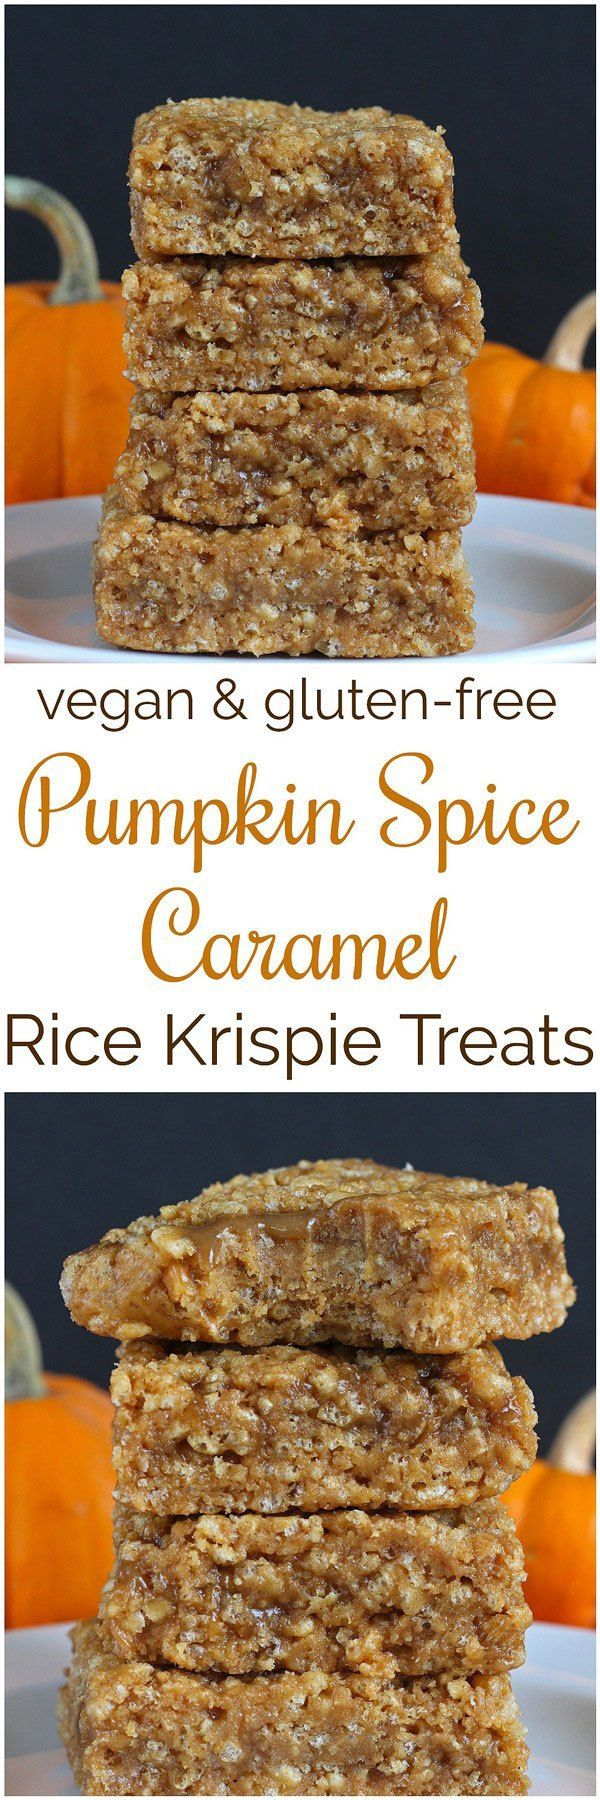 Pumpkin Spice Caramel Rice Krispie Treats [ VEGAN ] Transform those traditional rice krispie treats into something more fun with these Pumpkin Spice Caramel Rice Krispie Treats!